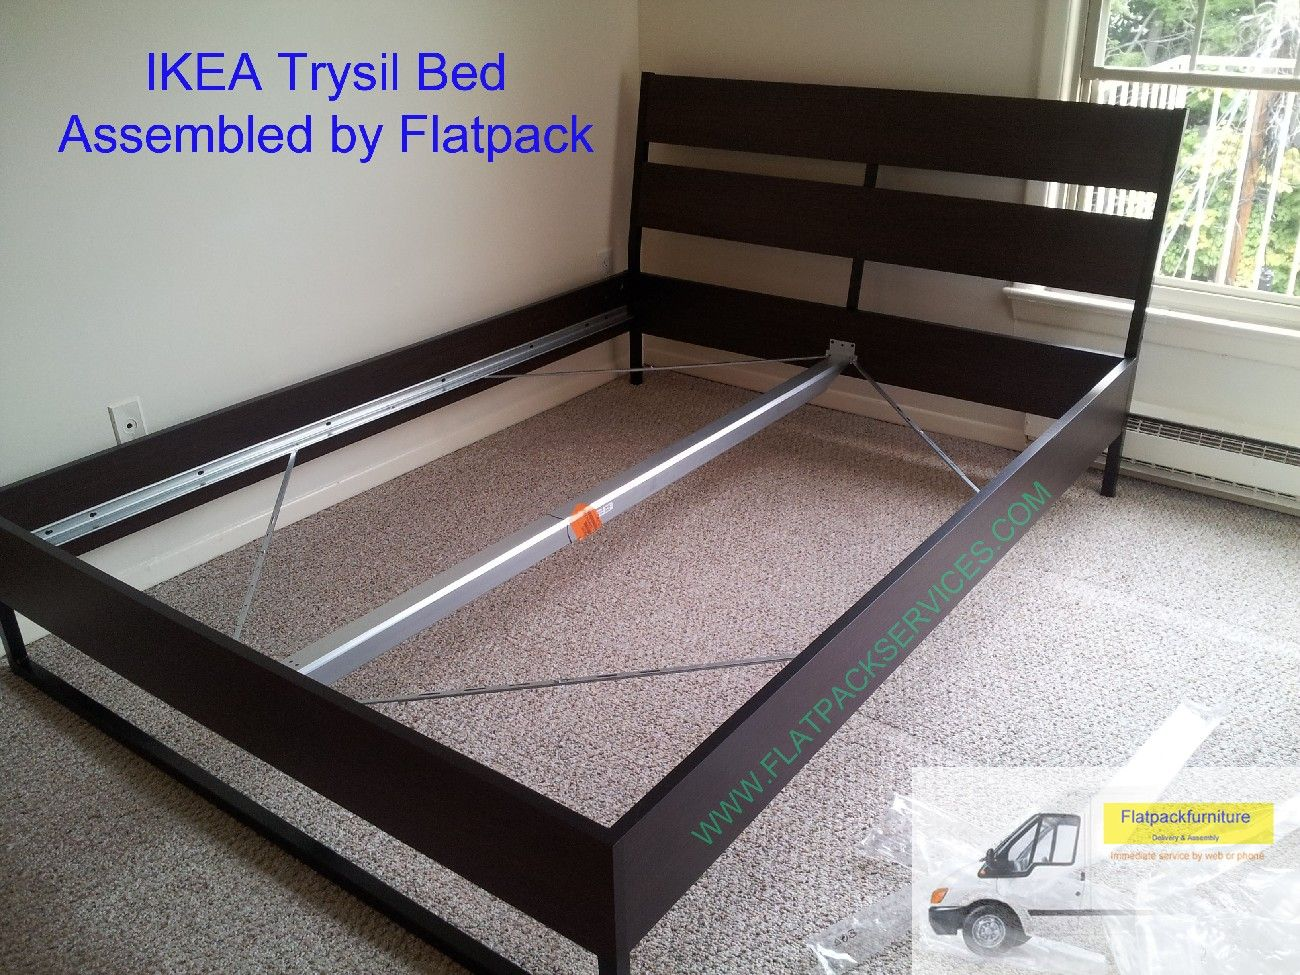 Beau TRYSIL Bed Frame Article Number: 090.078.13 Assembled By Flatpack Service  Assembly 240 603 2781 Furniture Assembly Washington DC | IKEA Furniture  Building ...